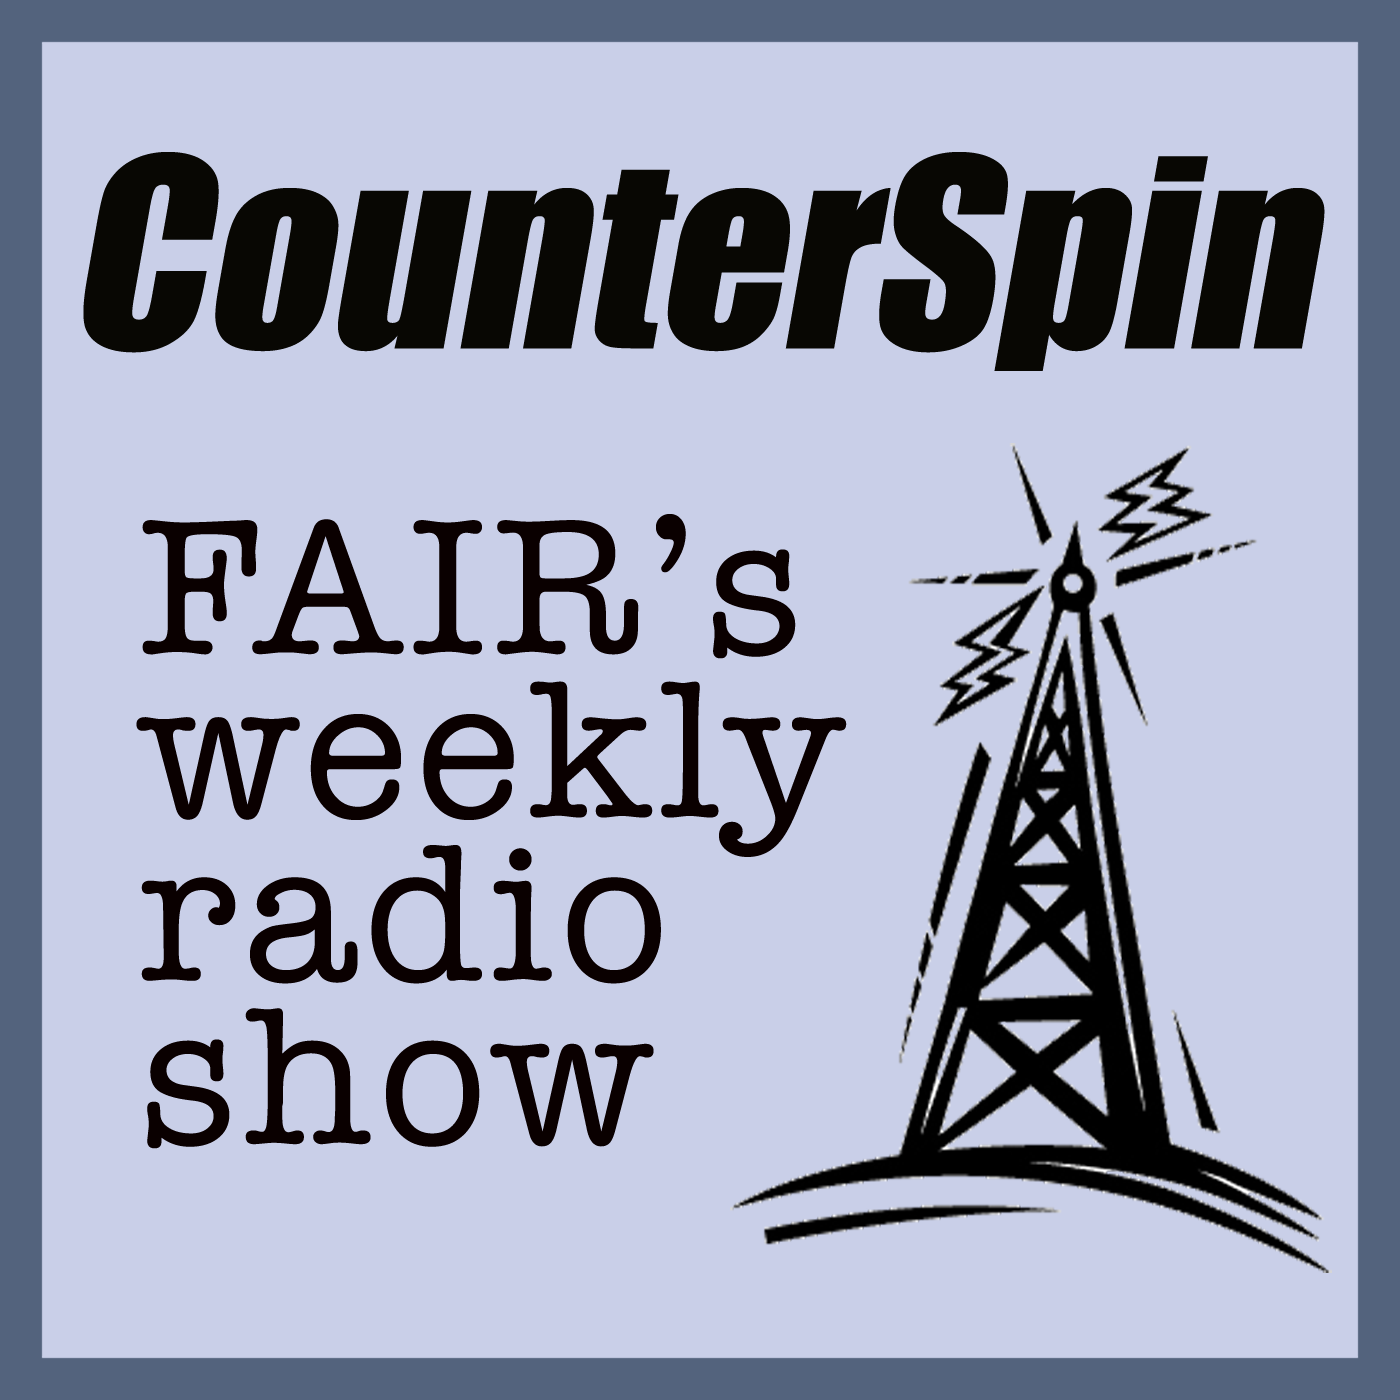 FAIR Counterspin Radio